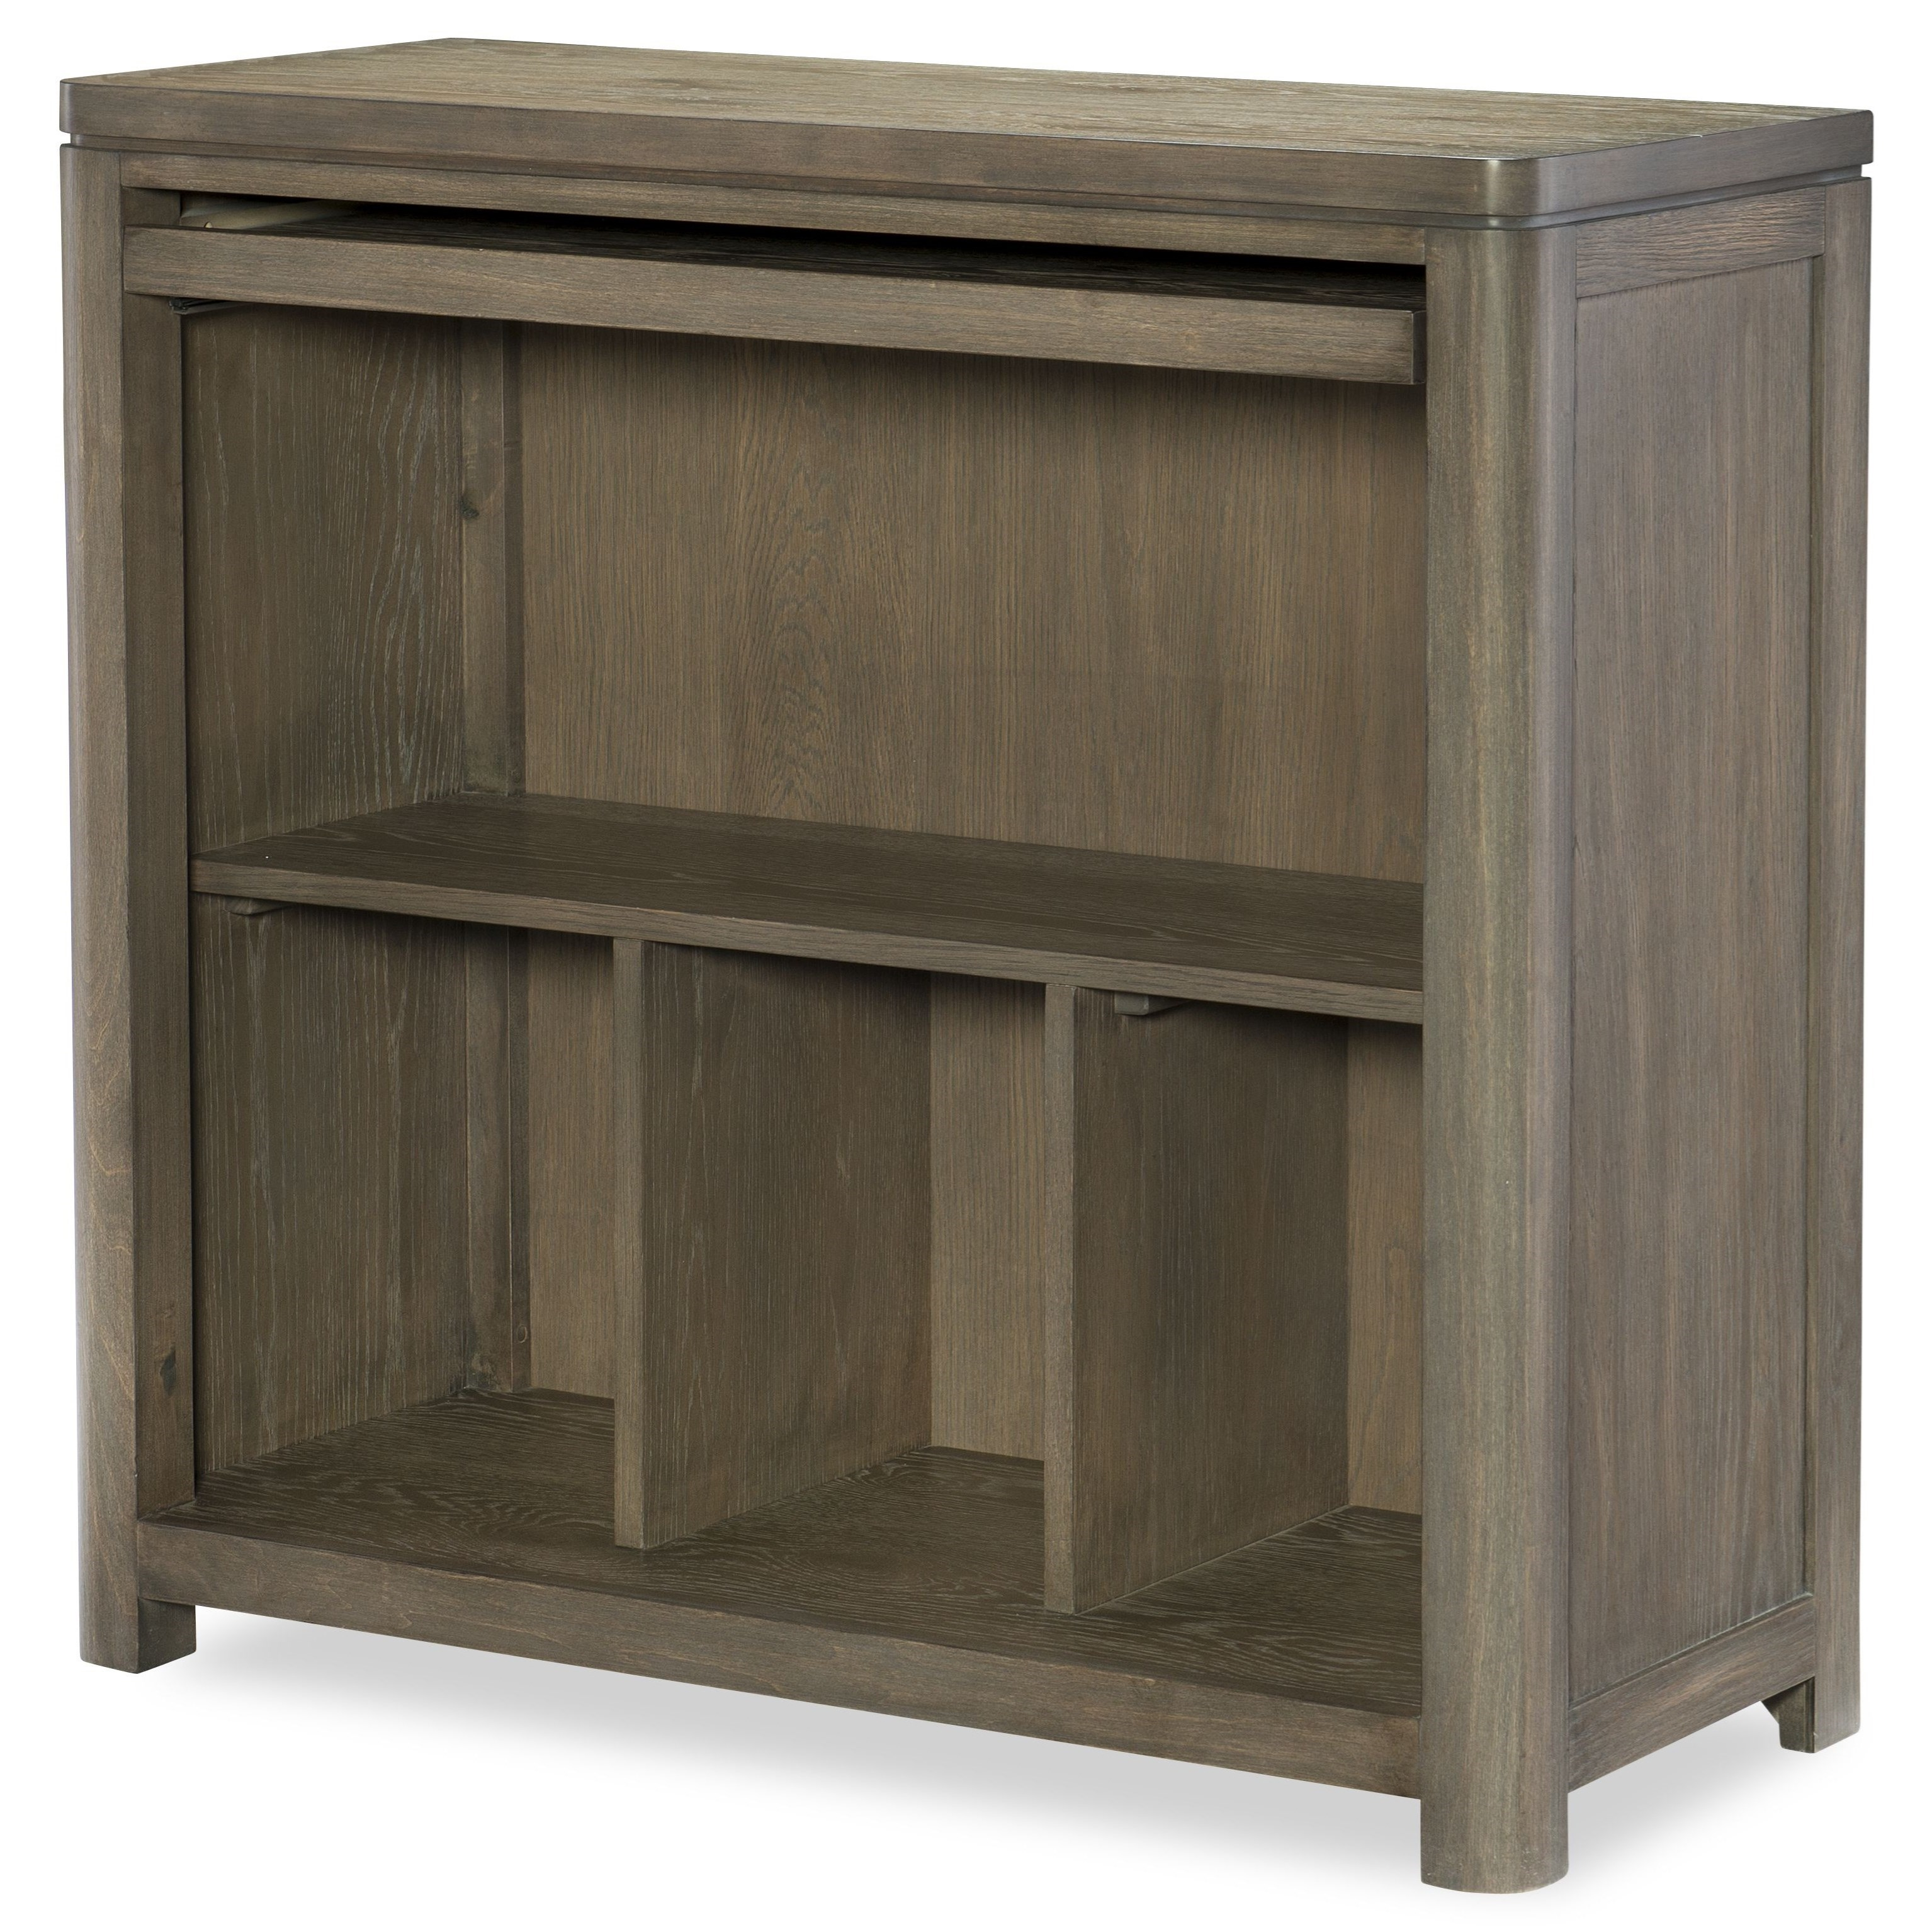 Legacy Classic Kids Big Sky By Wendy Bellissimo Desk With Pull Out Shelf Belfort Furniture